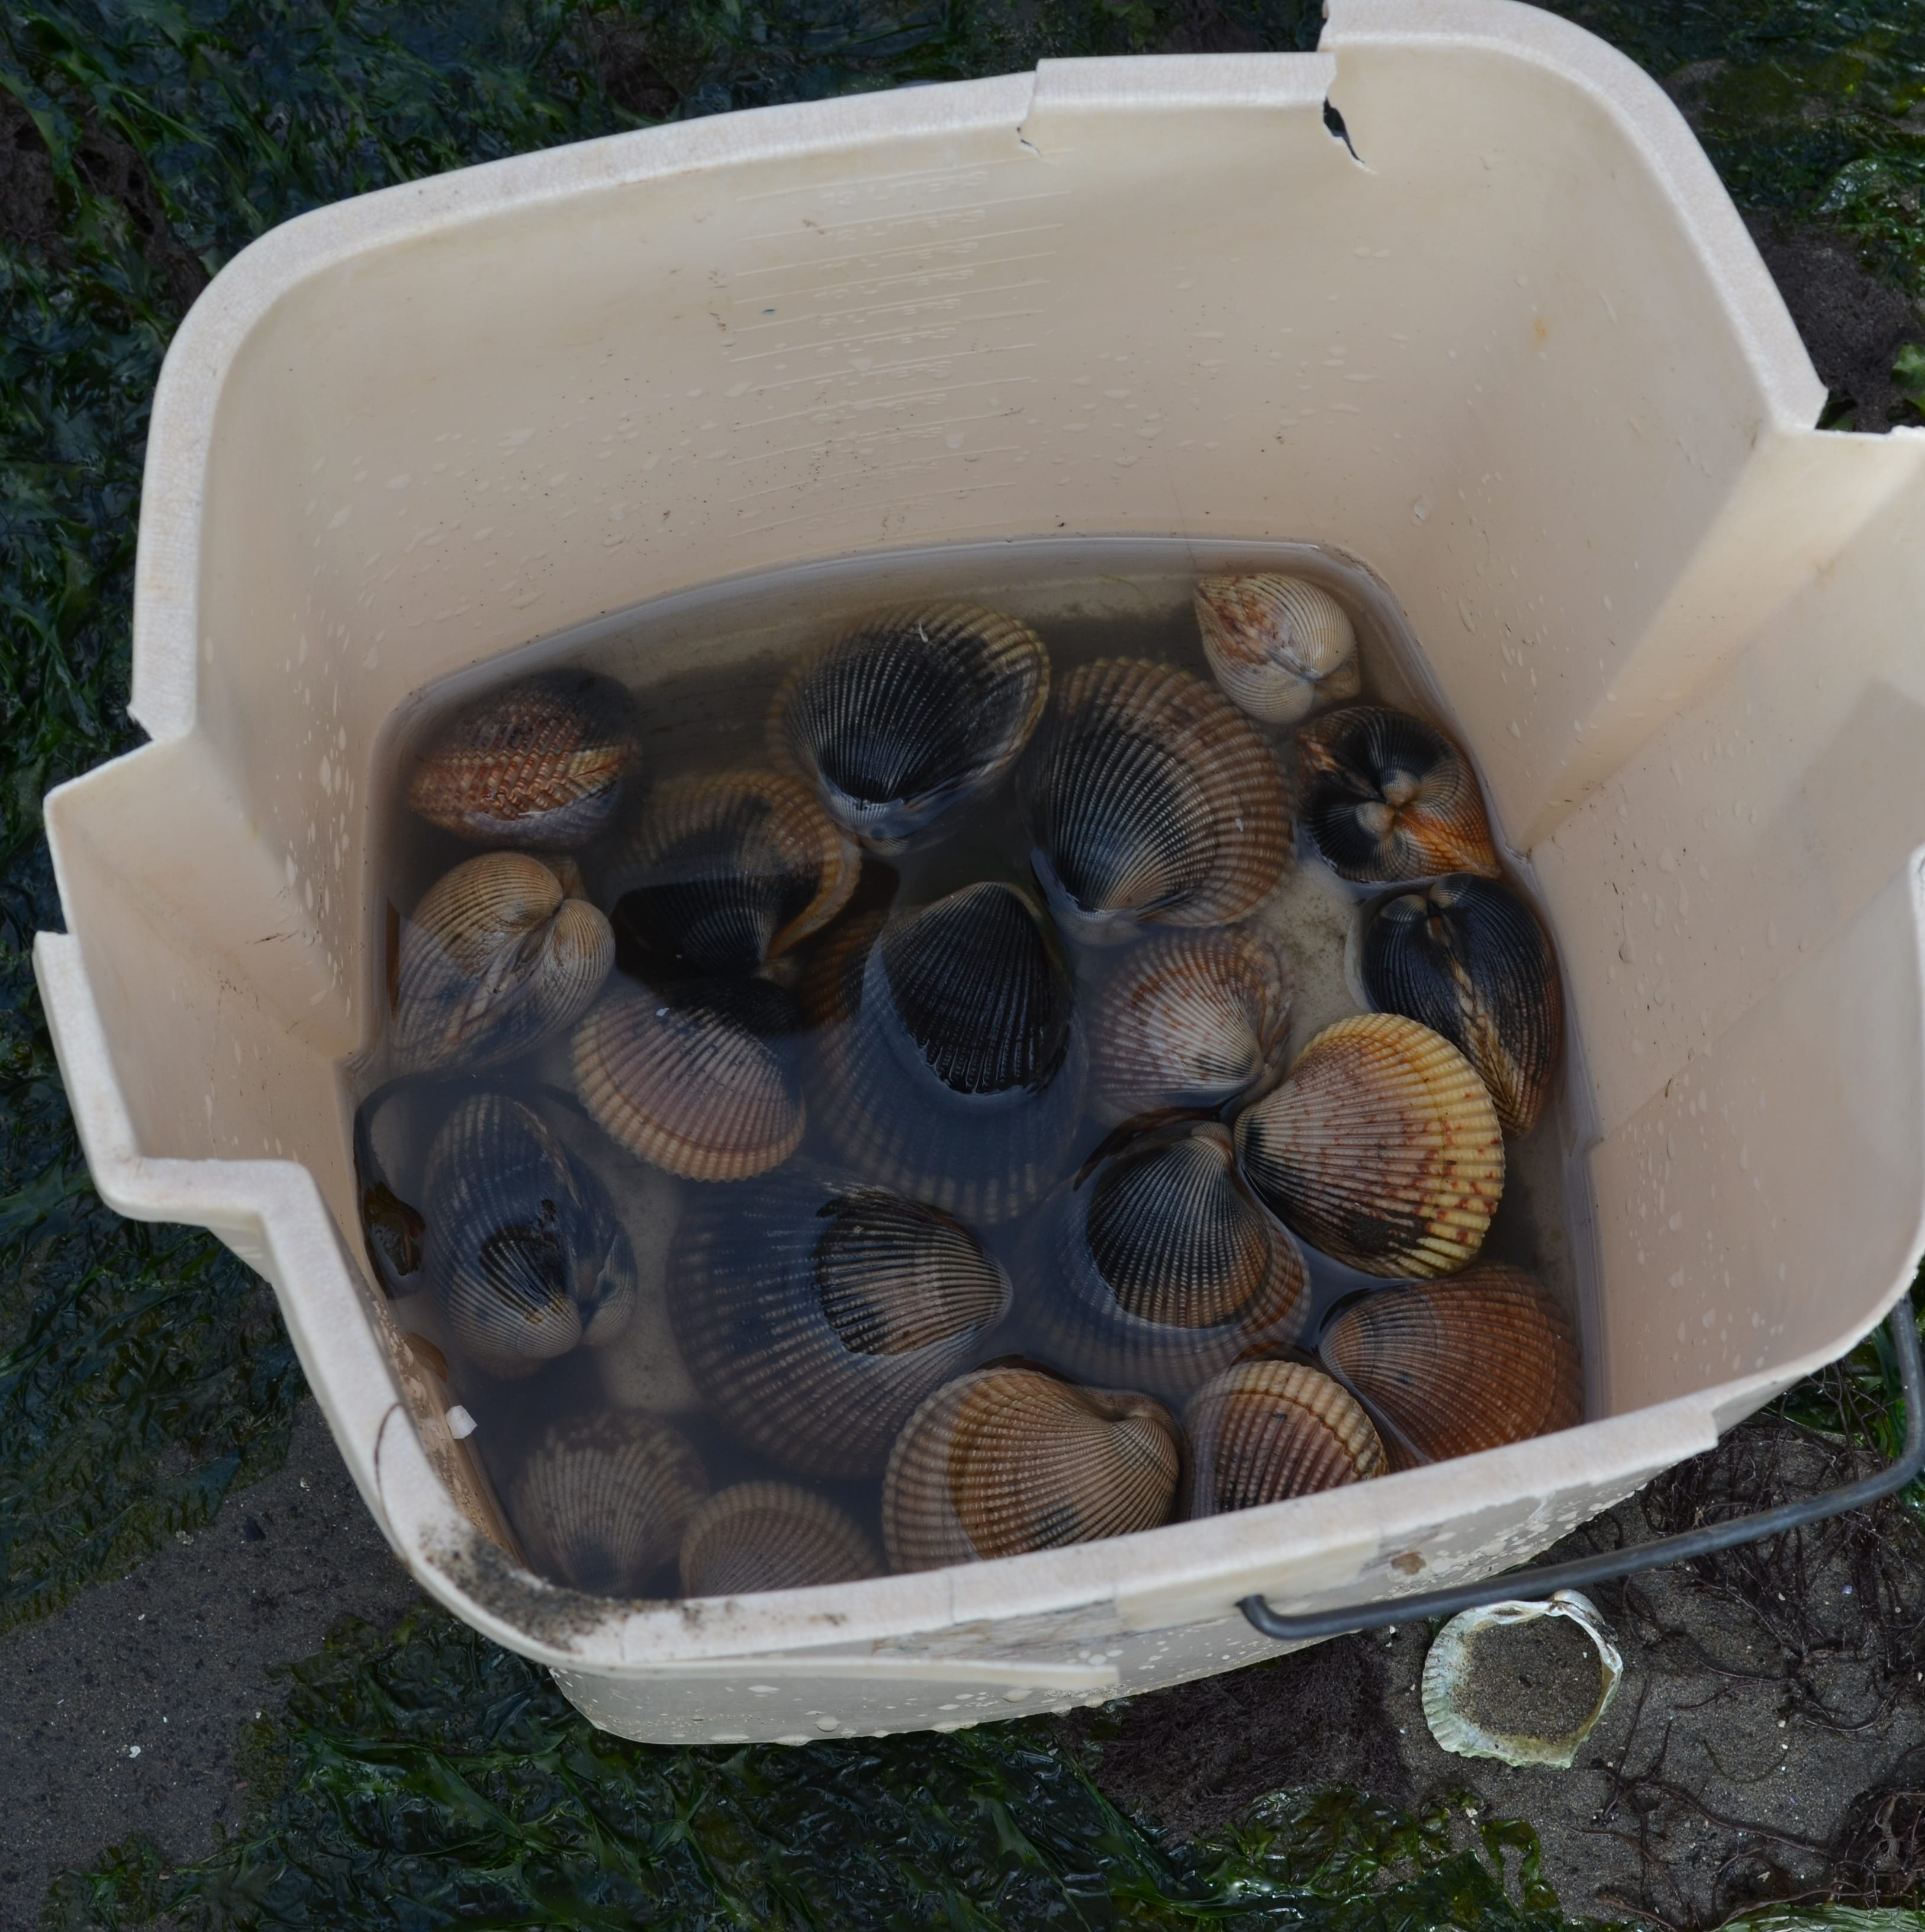 Henry Miller's last word on clamming, until the next time